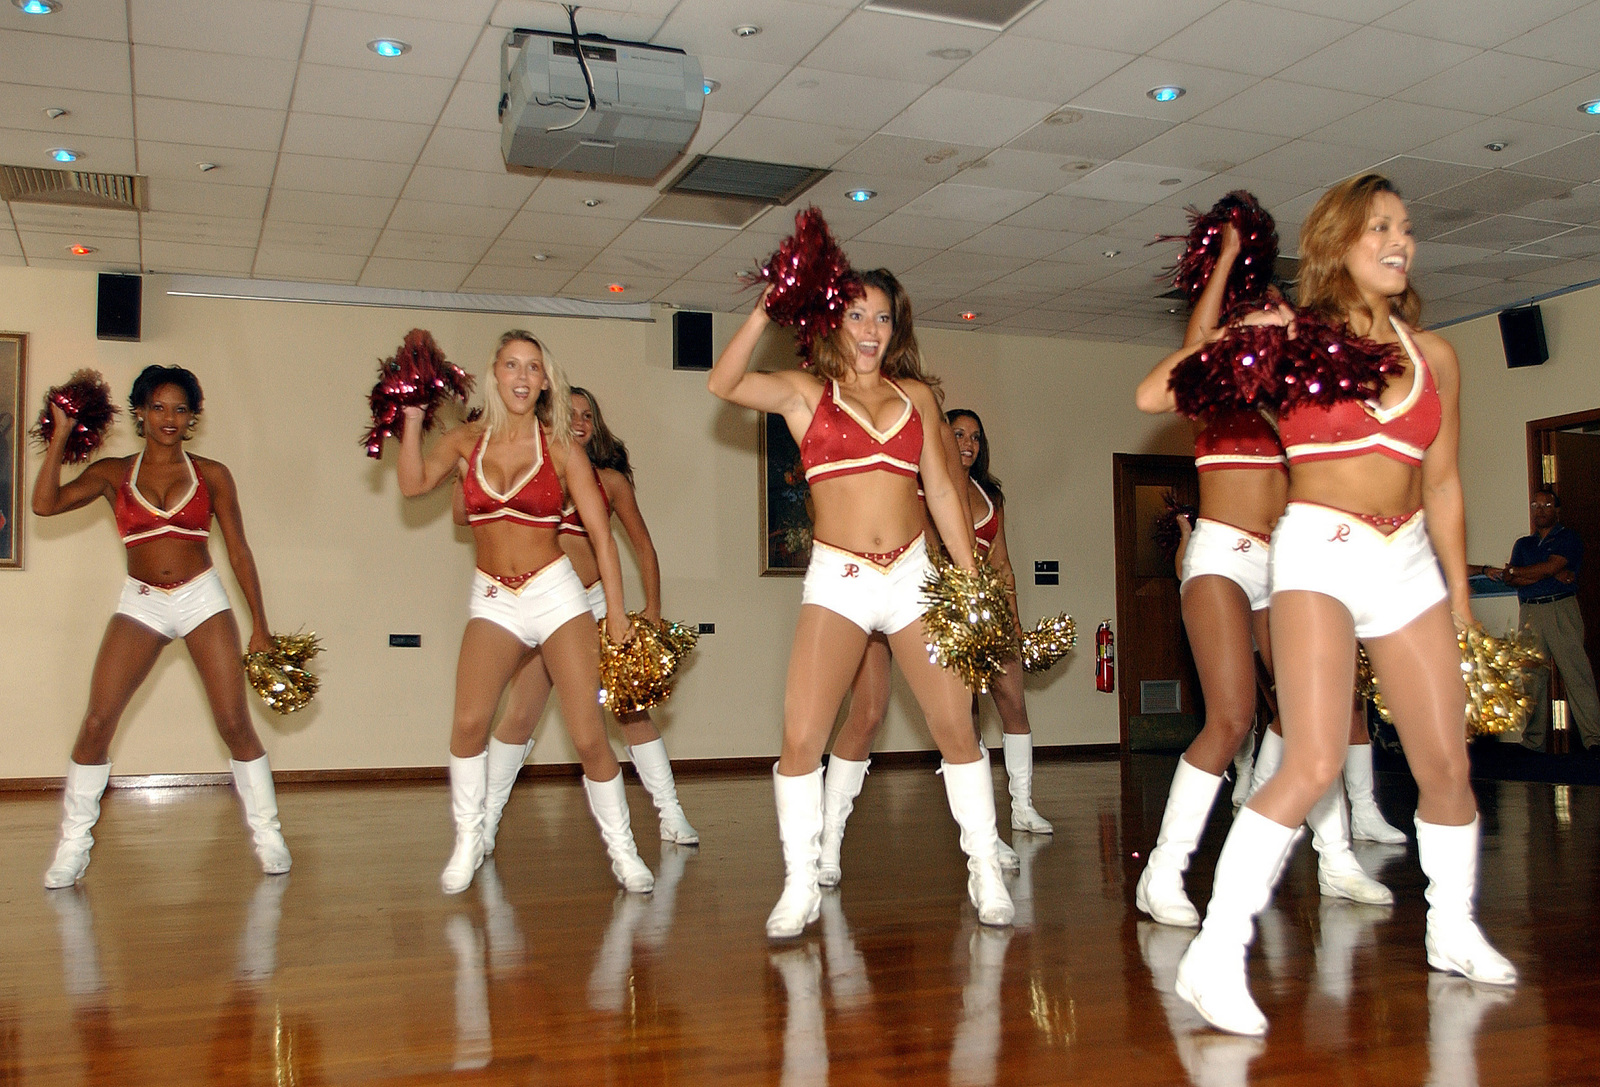 Members of the Cheerleading Squad from the National Football League (NFL) Washington Redskins Football Team perform for US Air Force (USAF) personnel inside the Non-Commissioned Officers (NCO) Base Club at Aviano Air Base (AB), Italy. The squad is on a promotional tour throughout Europe to various bases to entertain troops and promote morale